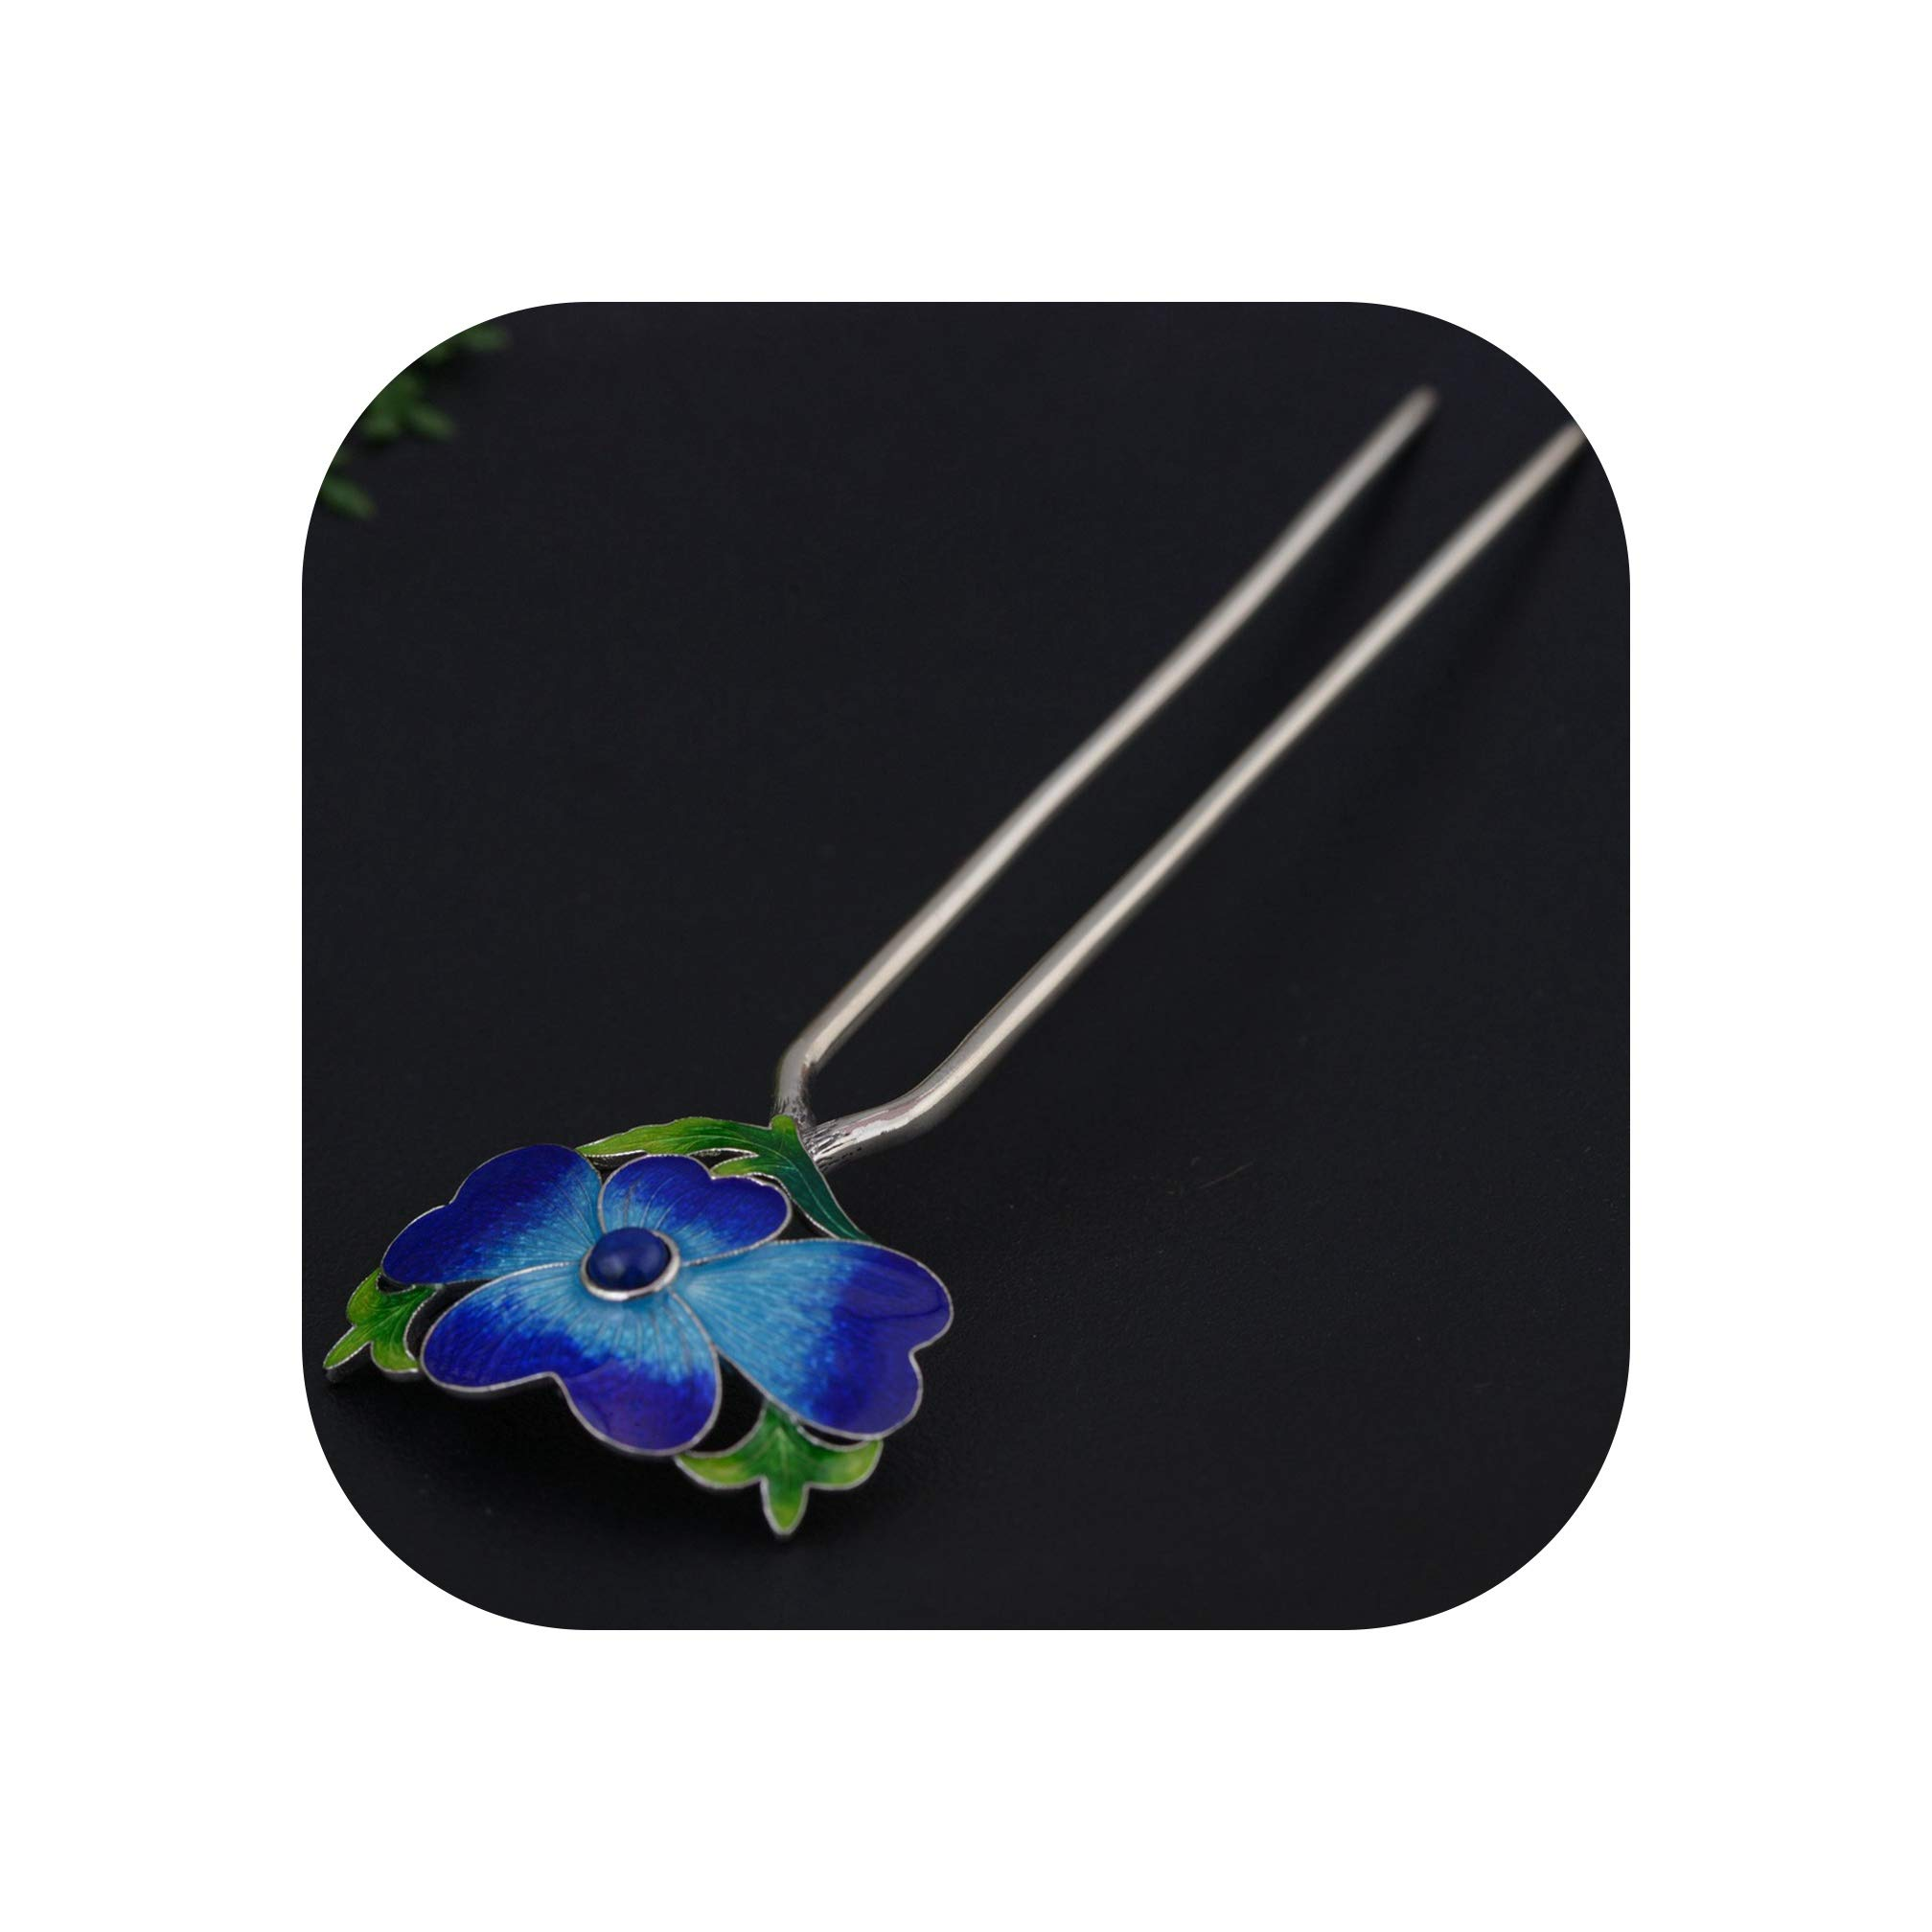 Cloisonne Silver Hair Stick Enamel Silver Chinese Hairpin 2 prong Peony Flower Hair Fork Jewelry Wedding 100x32mm WIGO1301,WIGO1301 Blue 1pc